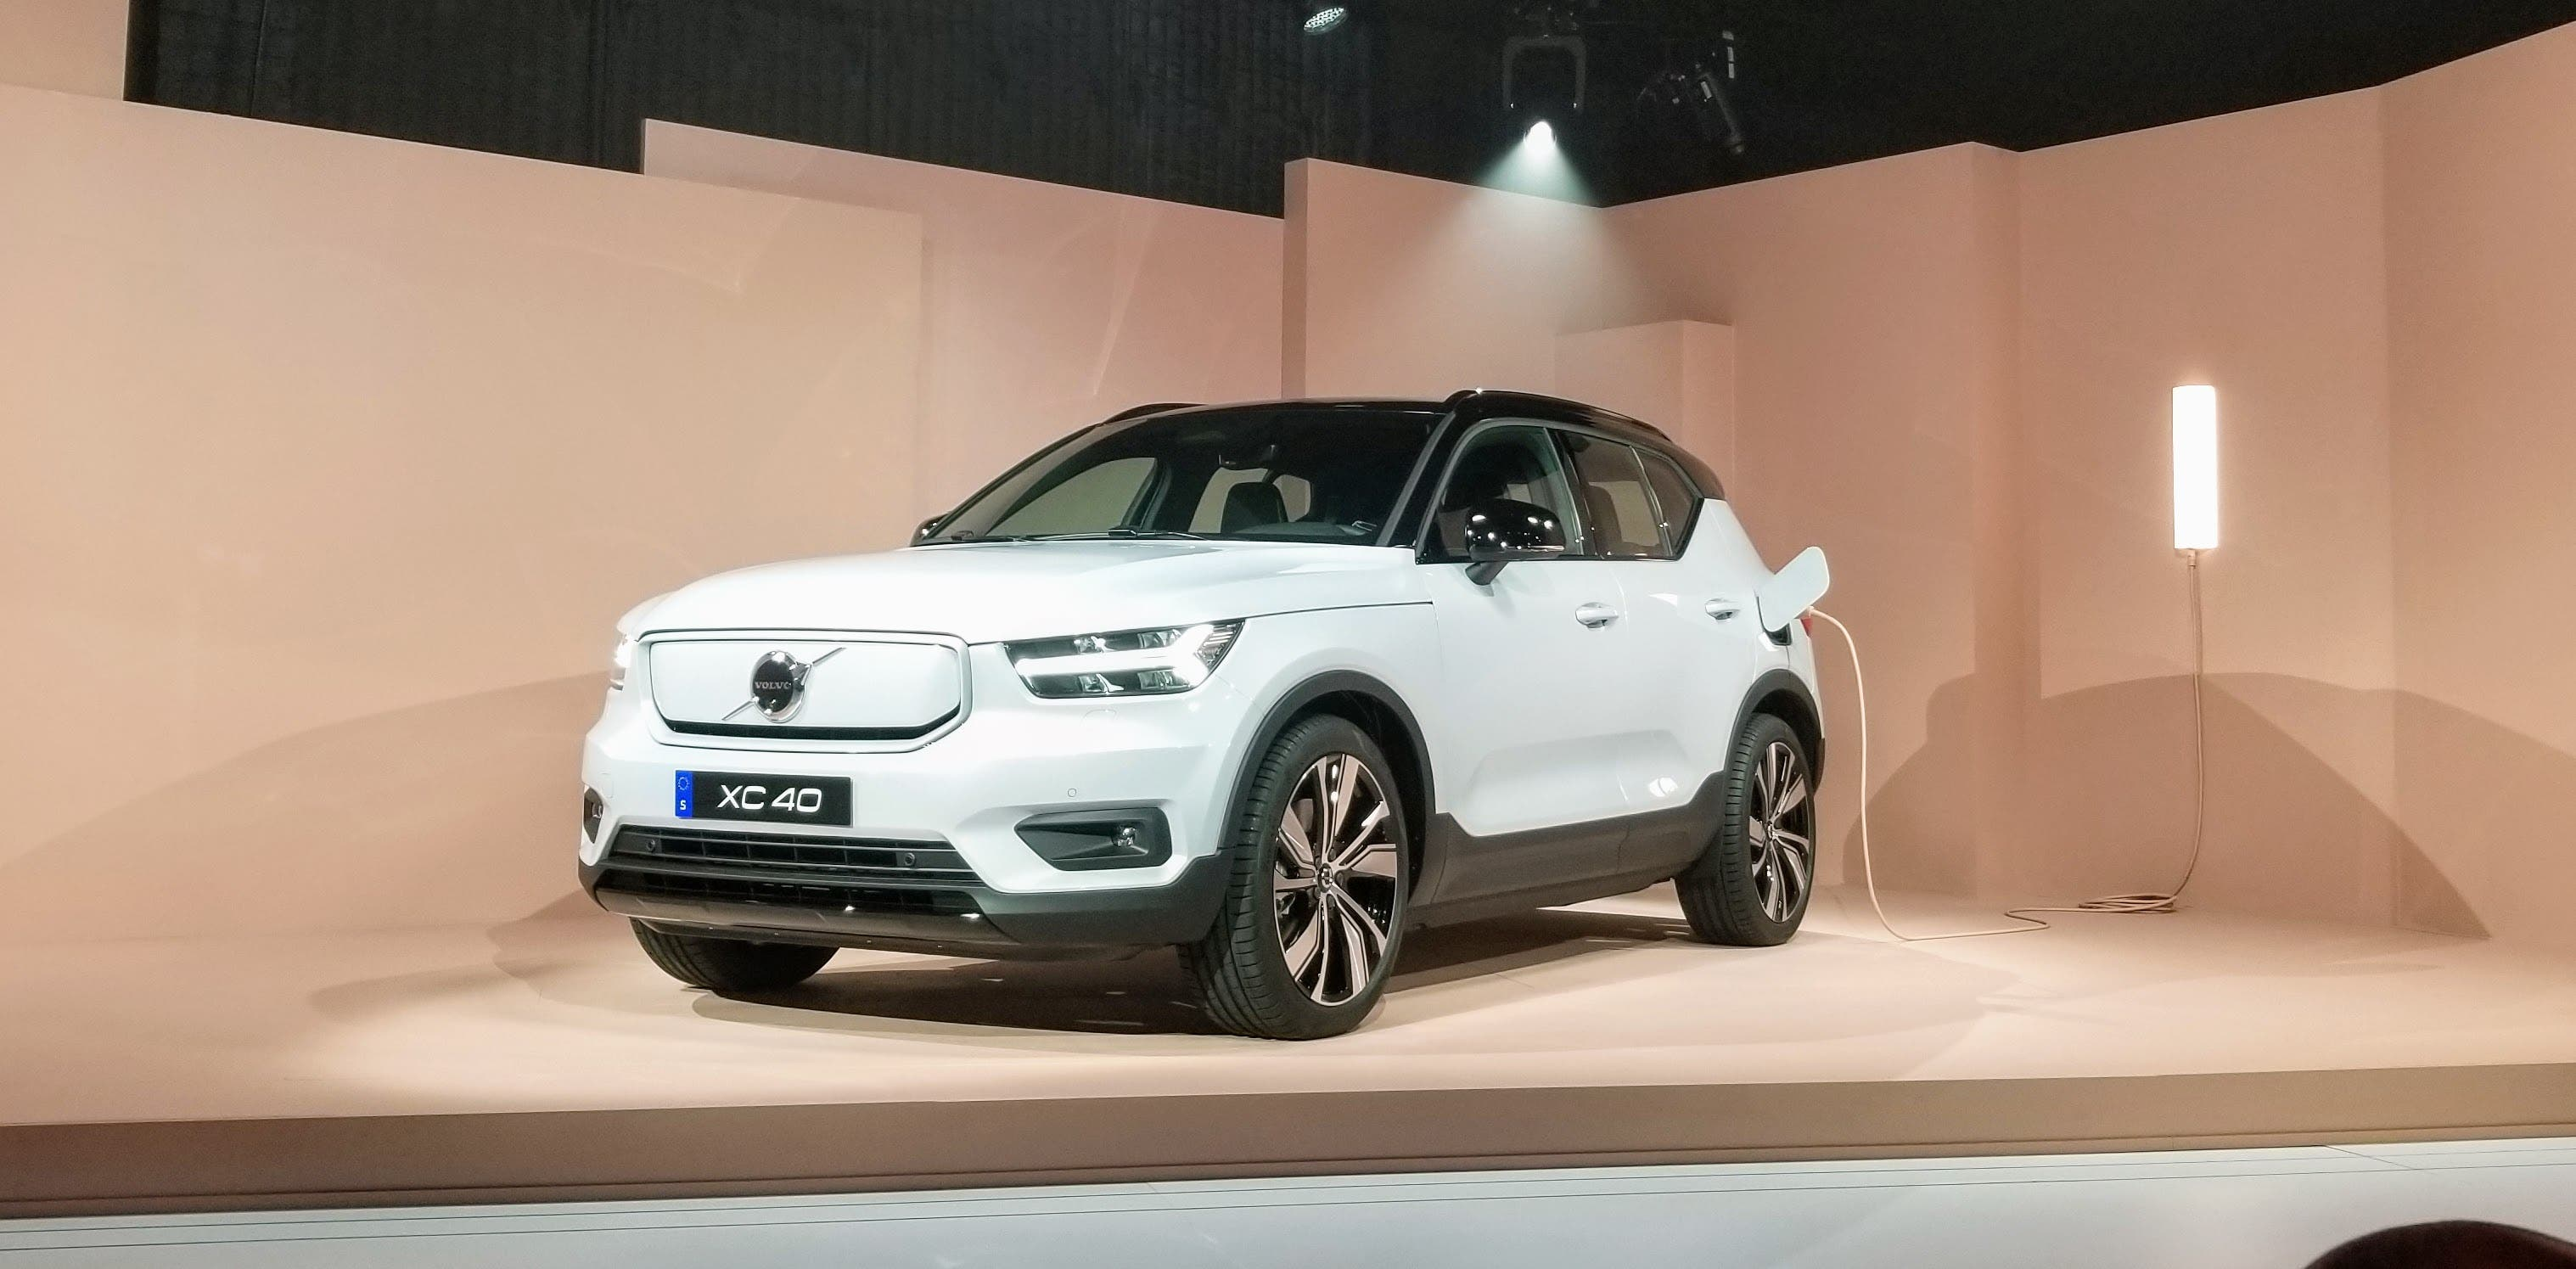 Volvo Takes The Wraps Off The Fully Electric XC40 & Dives